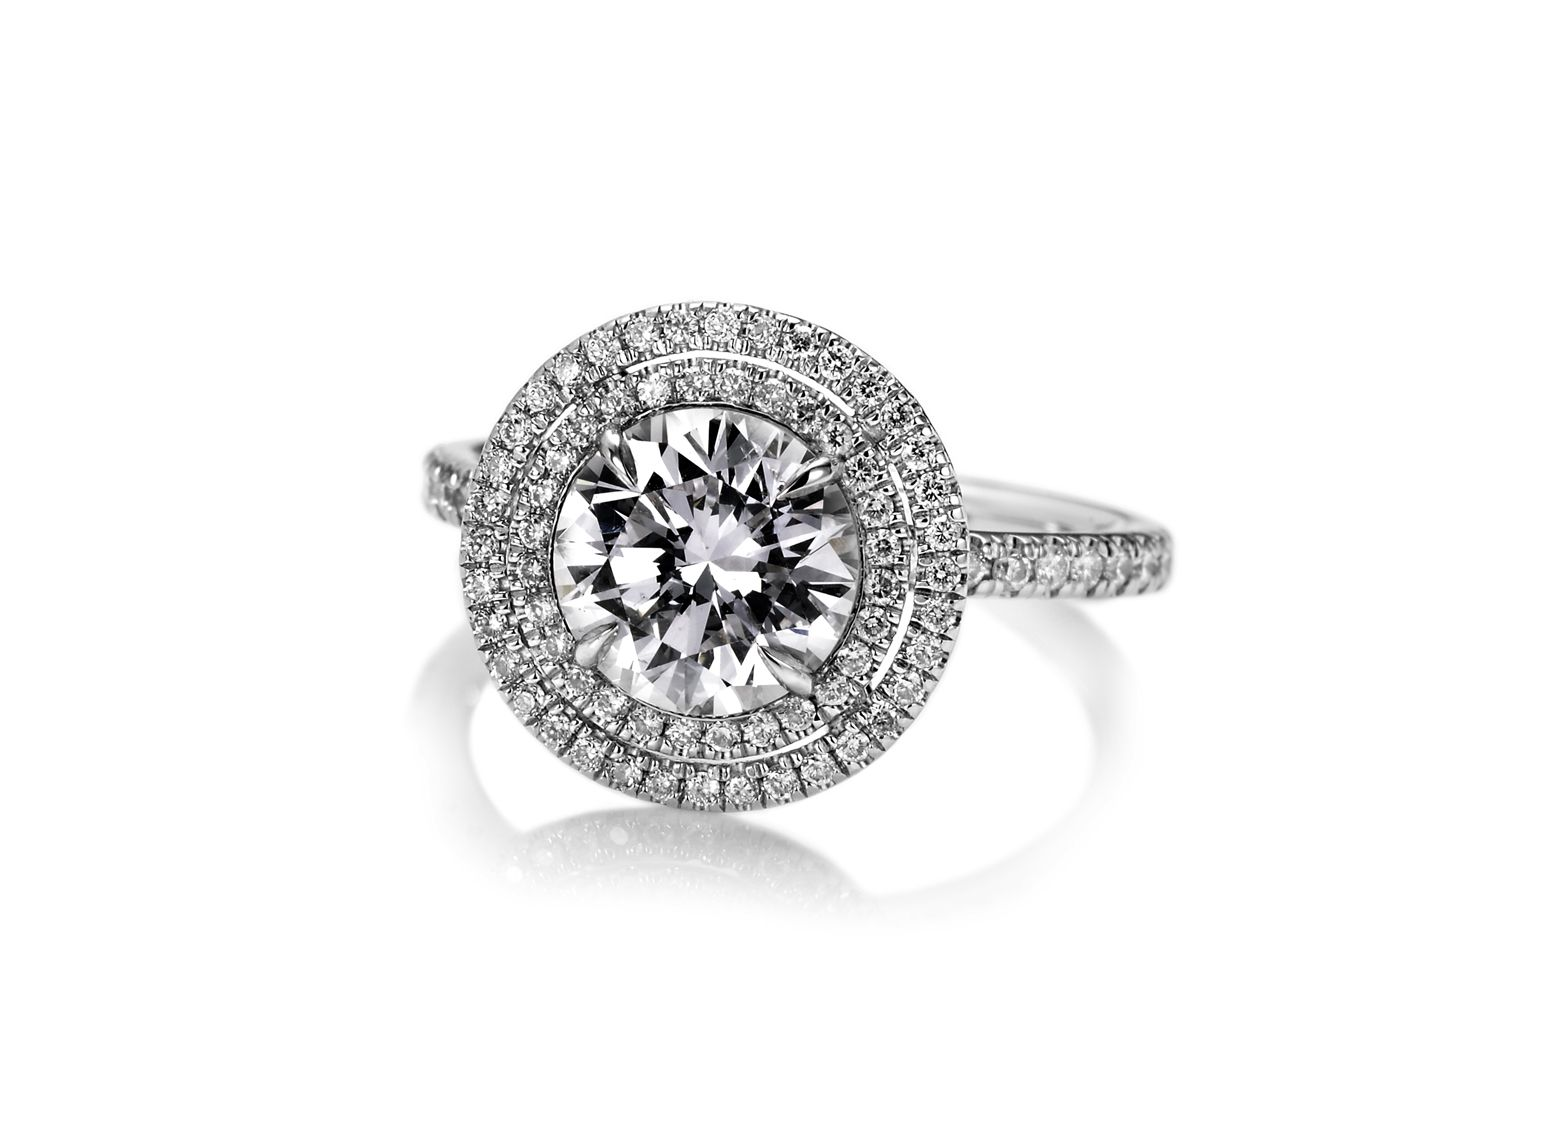 David alan jewelry custom made round diamond engagement ring with